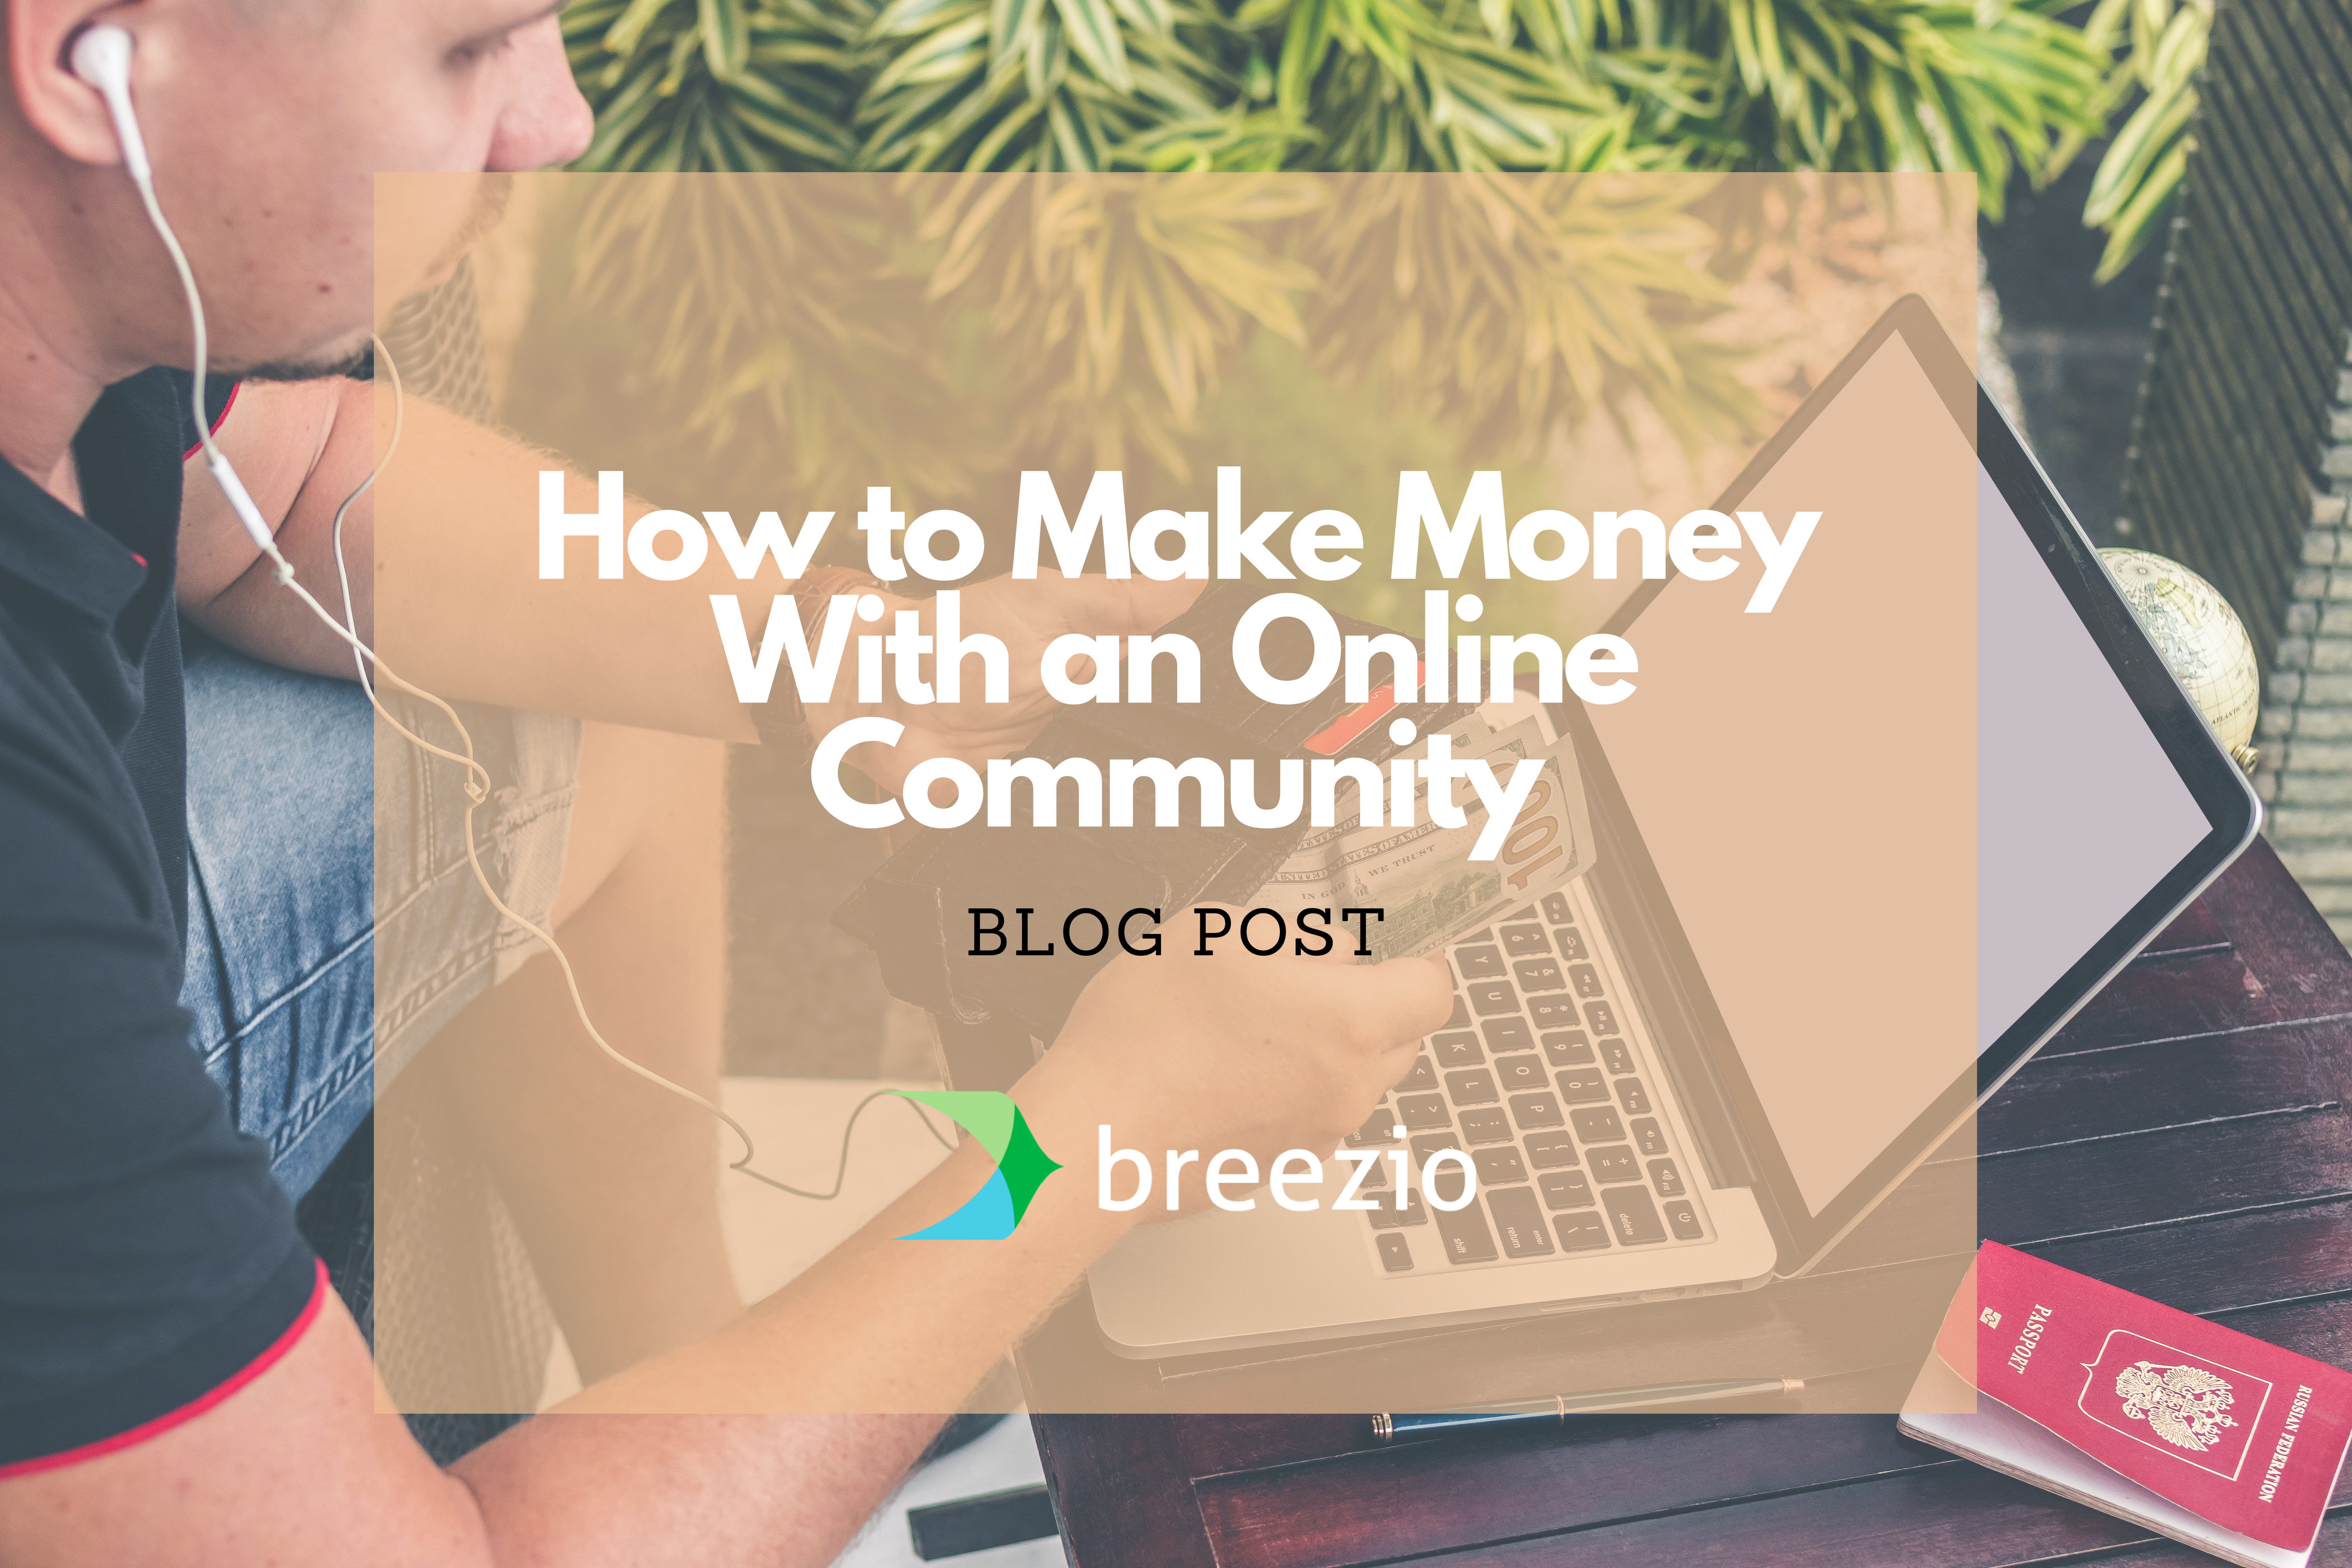 How to Make Money With an Online Community